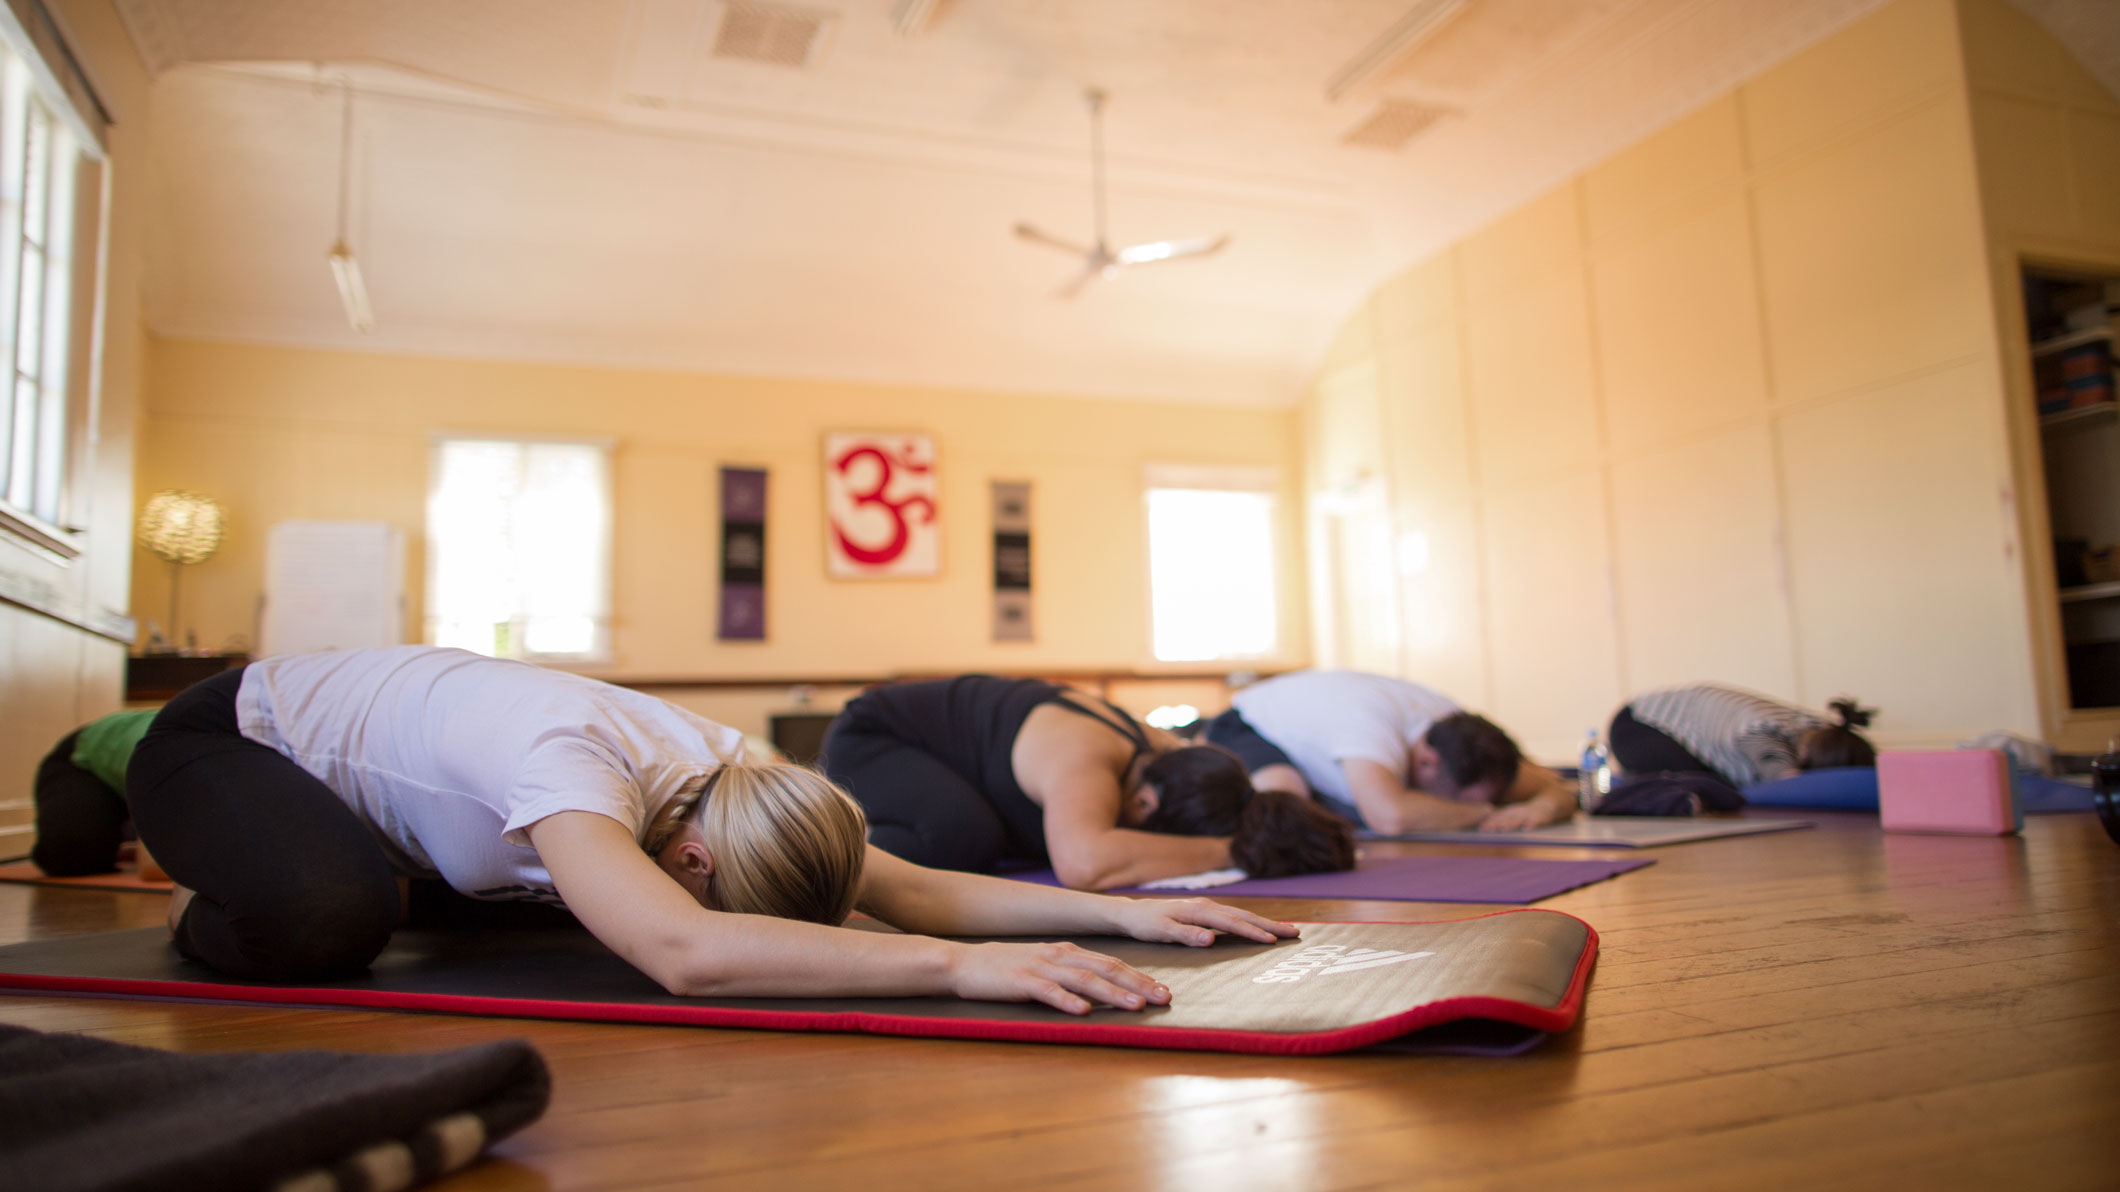 Clayfield-Yoga-Studio-Brisbane-Interior-4